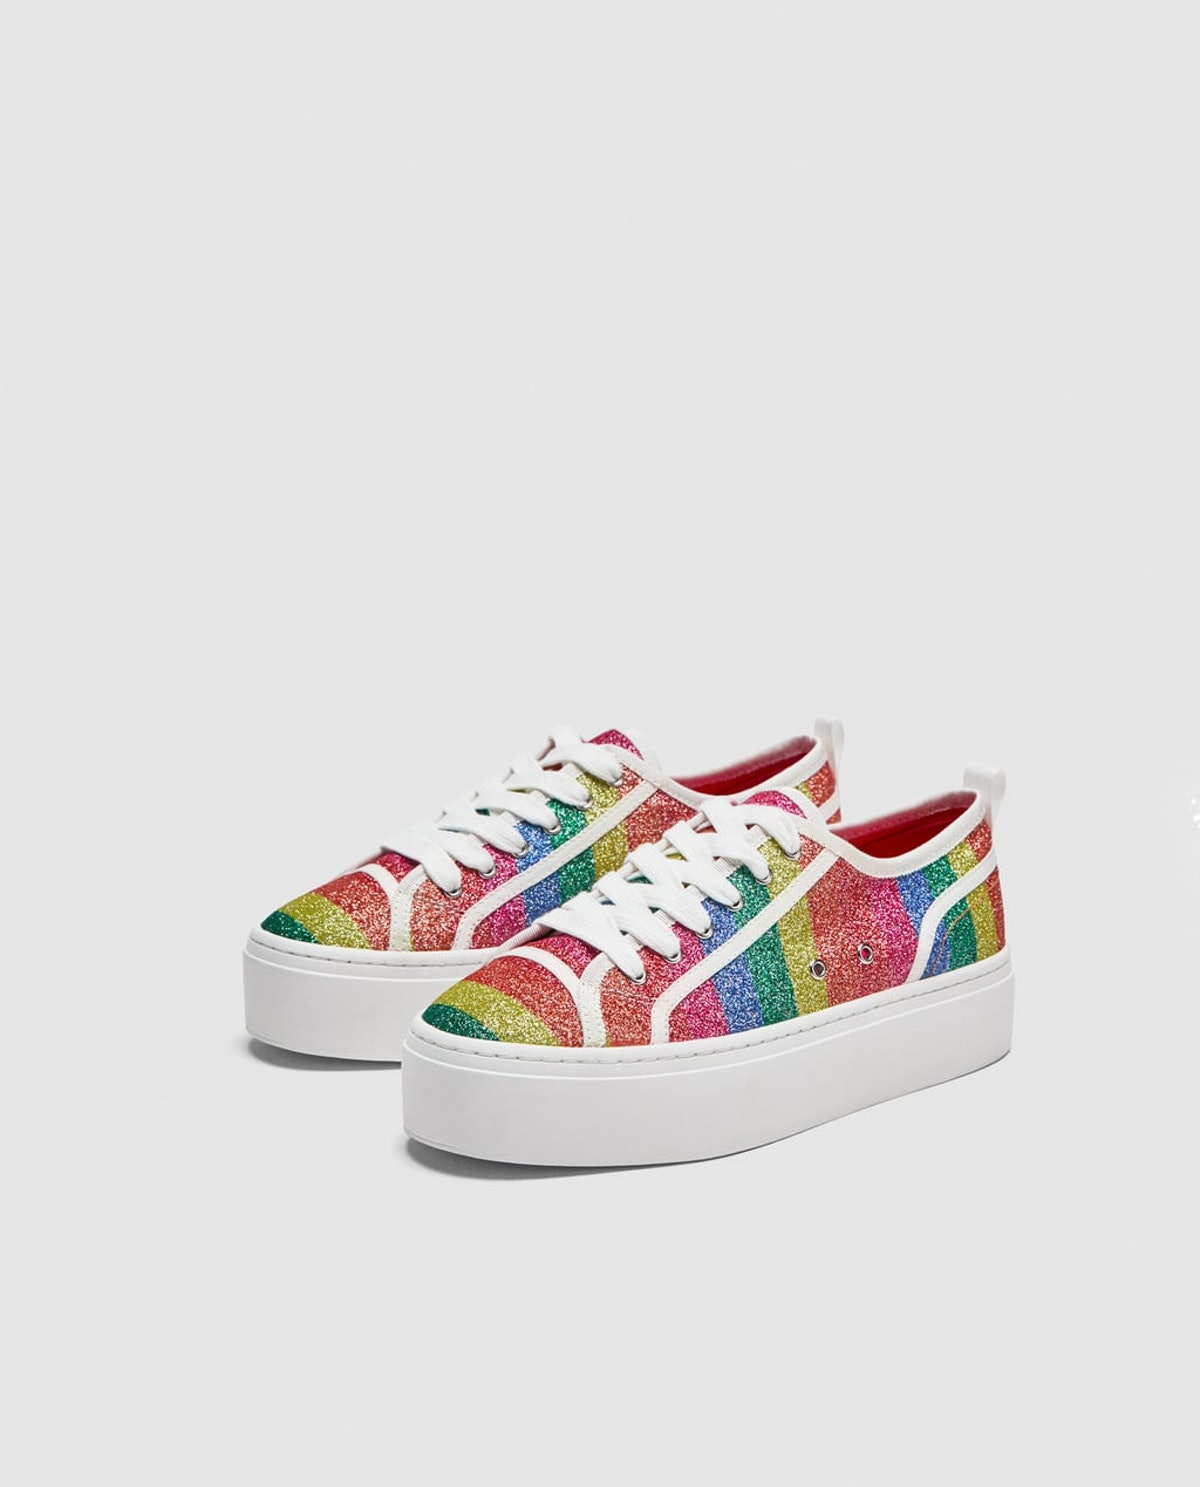 SHINY MULTICOLORED SNEAKERS